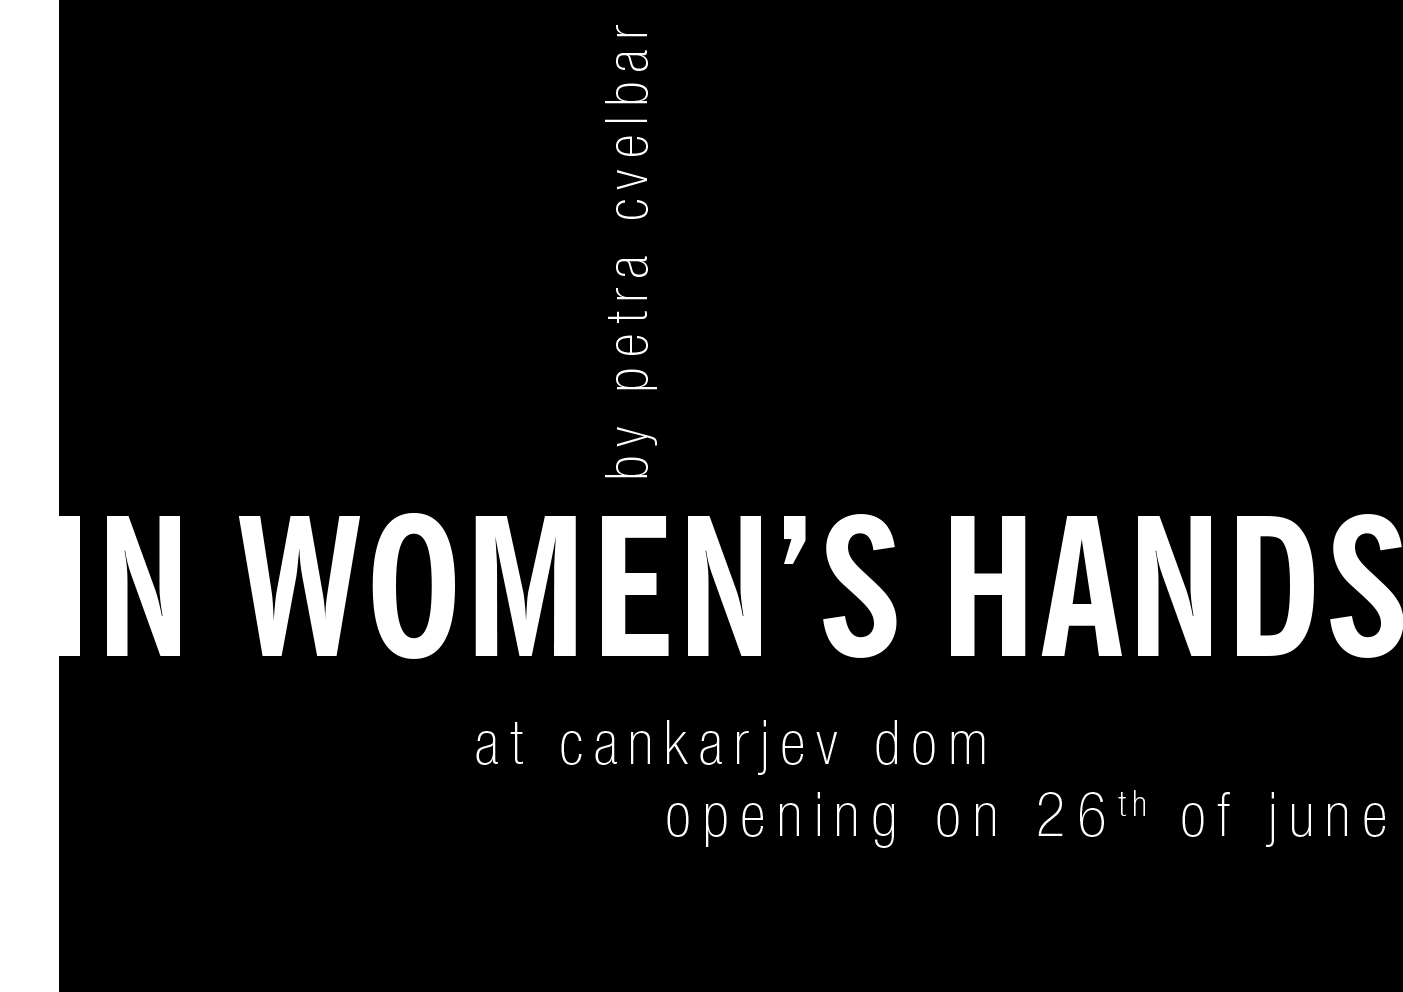 Upcoming Photo Exhibition In Women's Hands at Cankarjev dom, Ljubljana